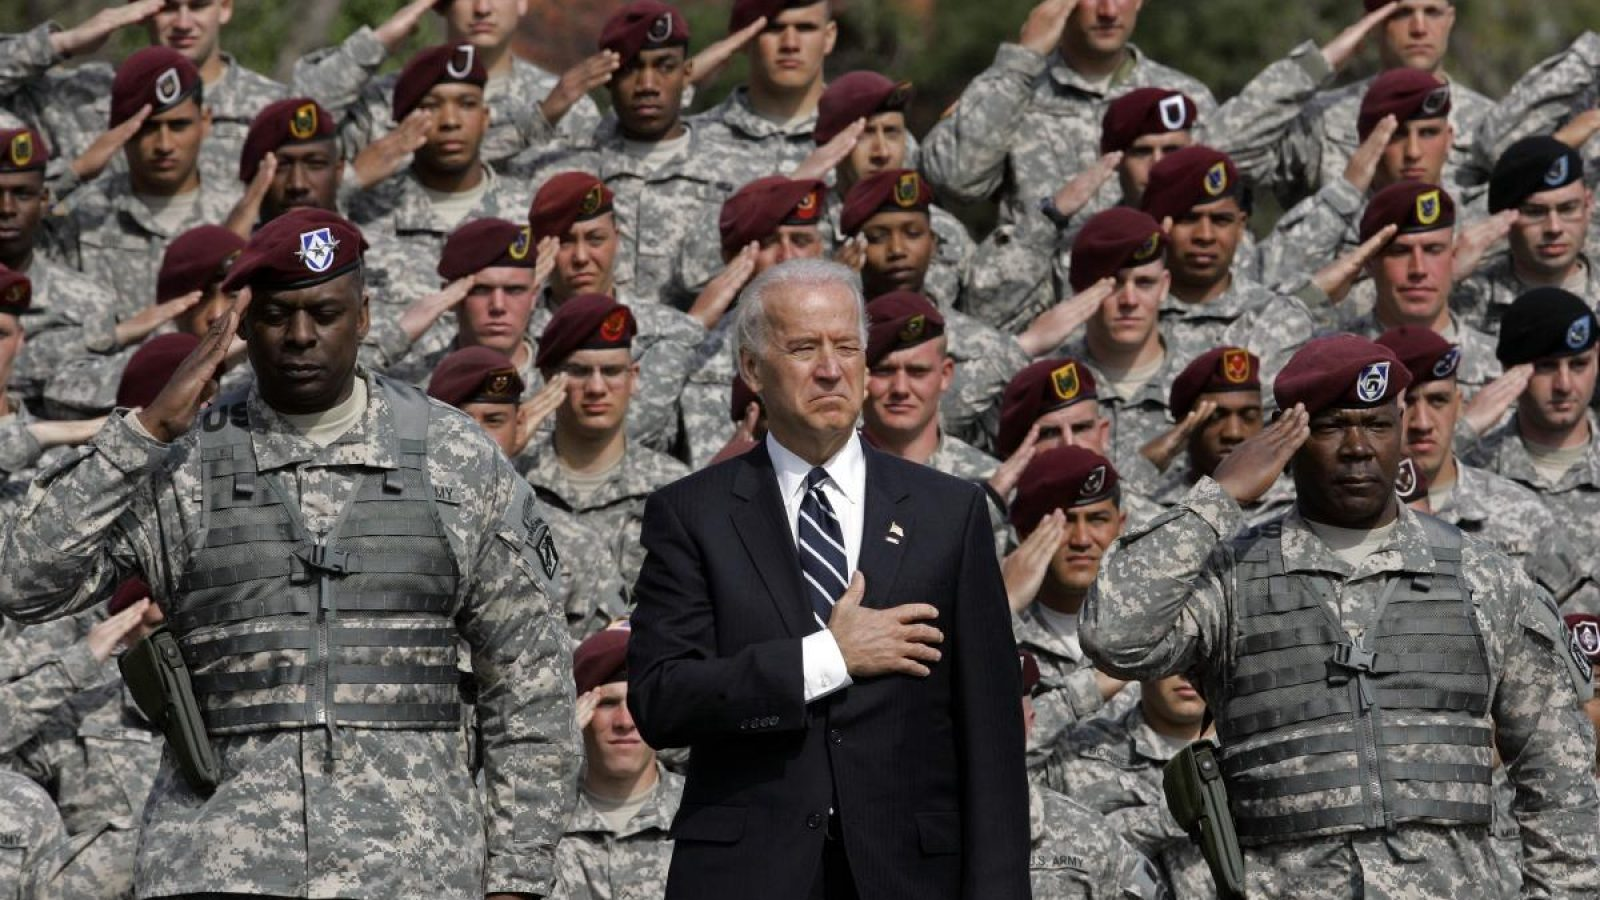 Joe Biden in a suit puts his hand over his heart and and Lloyd Austin in a green camouflage uniform salutes in the foreground, with soldiers in green camouflage saluting behind them